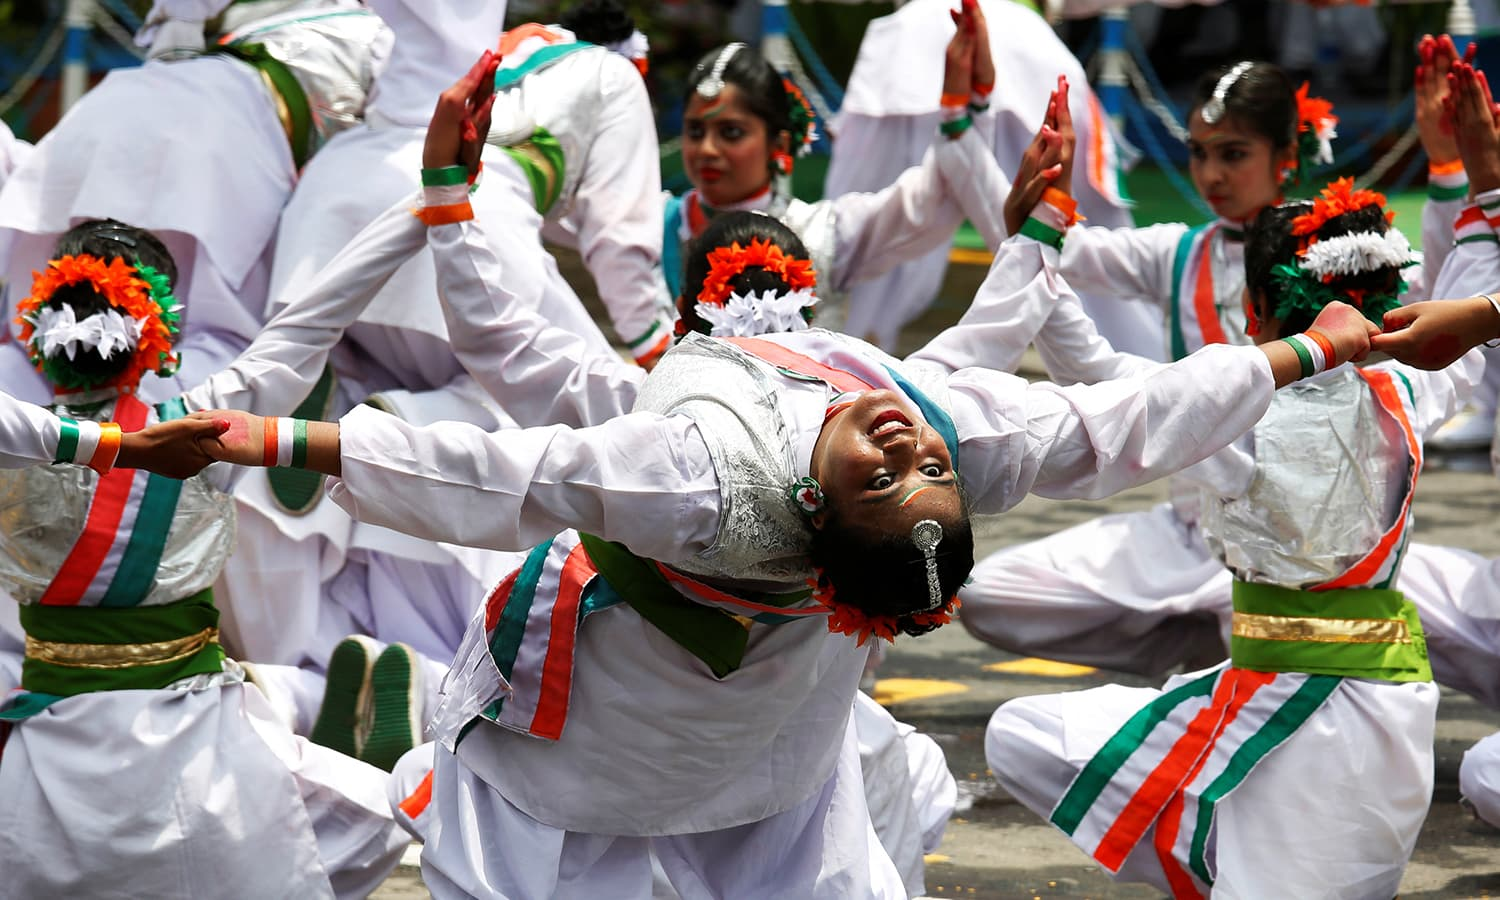 Schoolchildren perform during the India's Independence Day celebrations in Kolkata, August 15, 2016. ─ Reuters